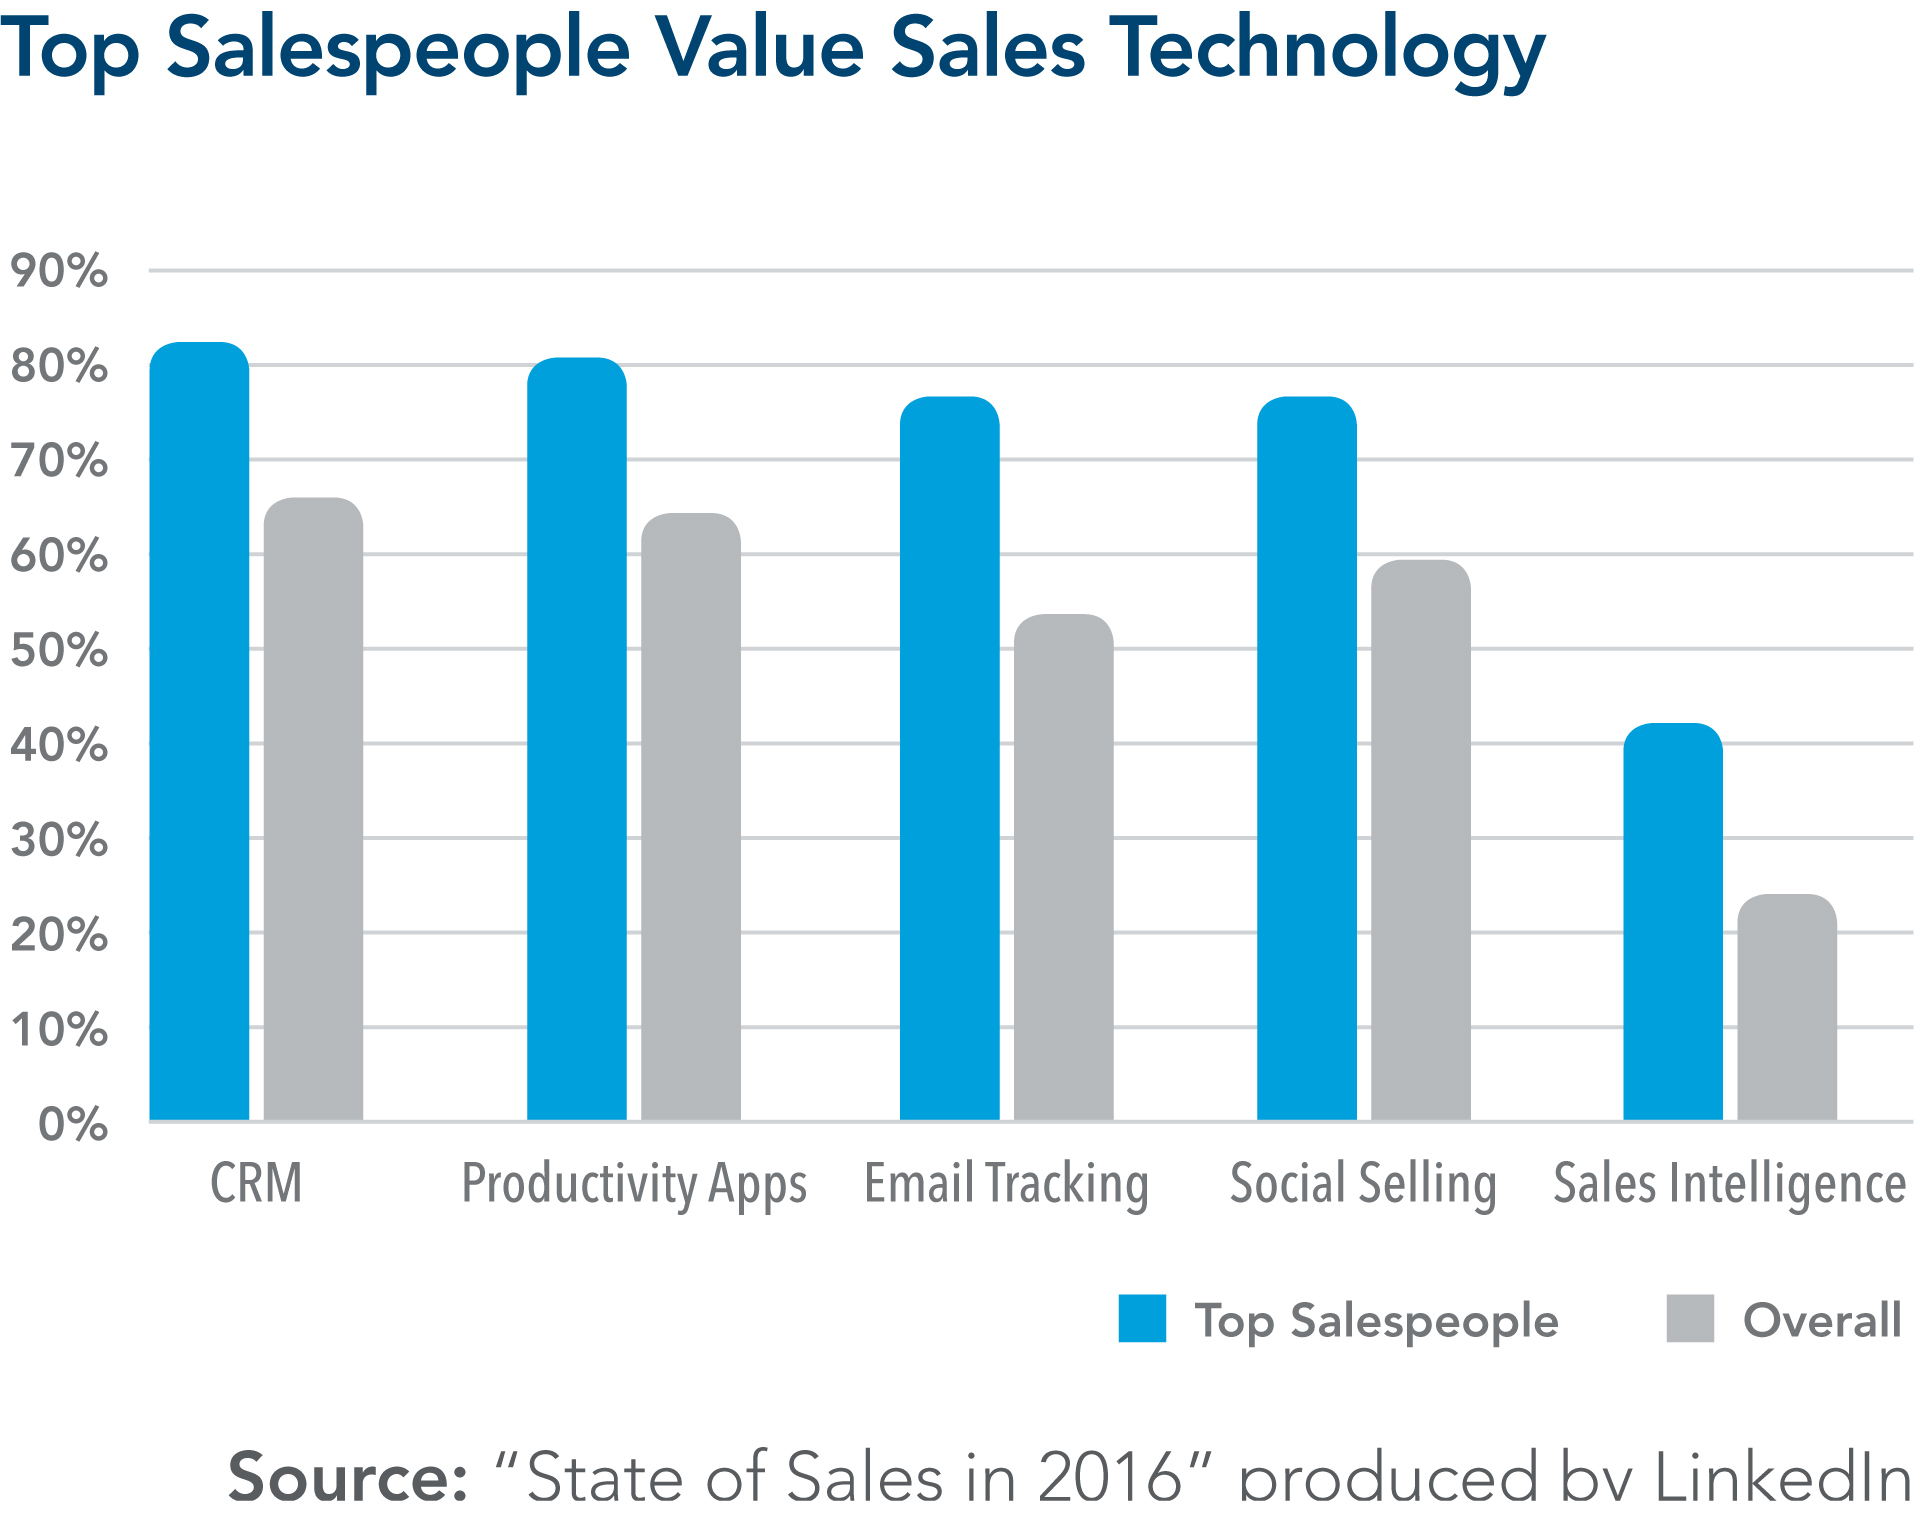 graph-top-salespeople-technology